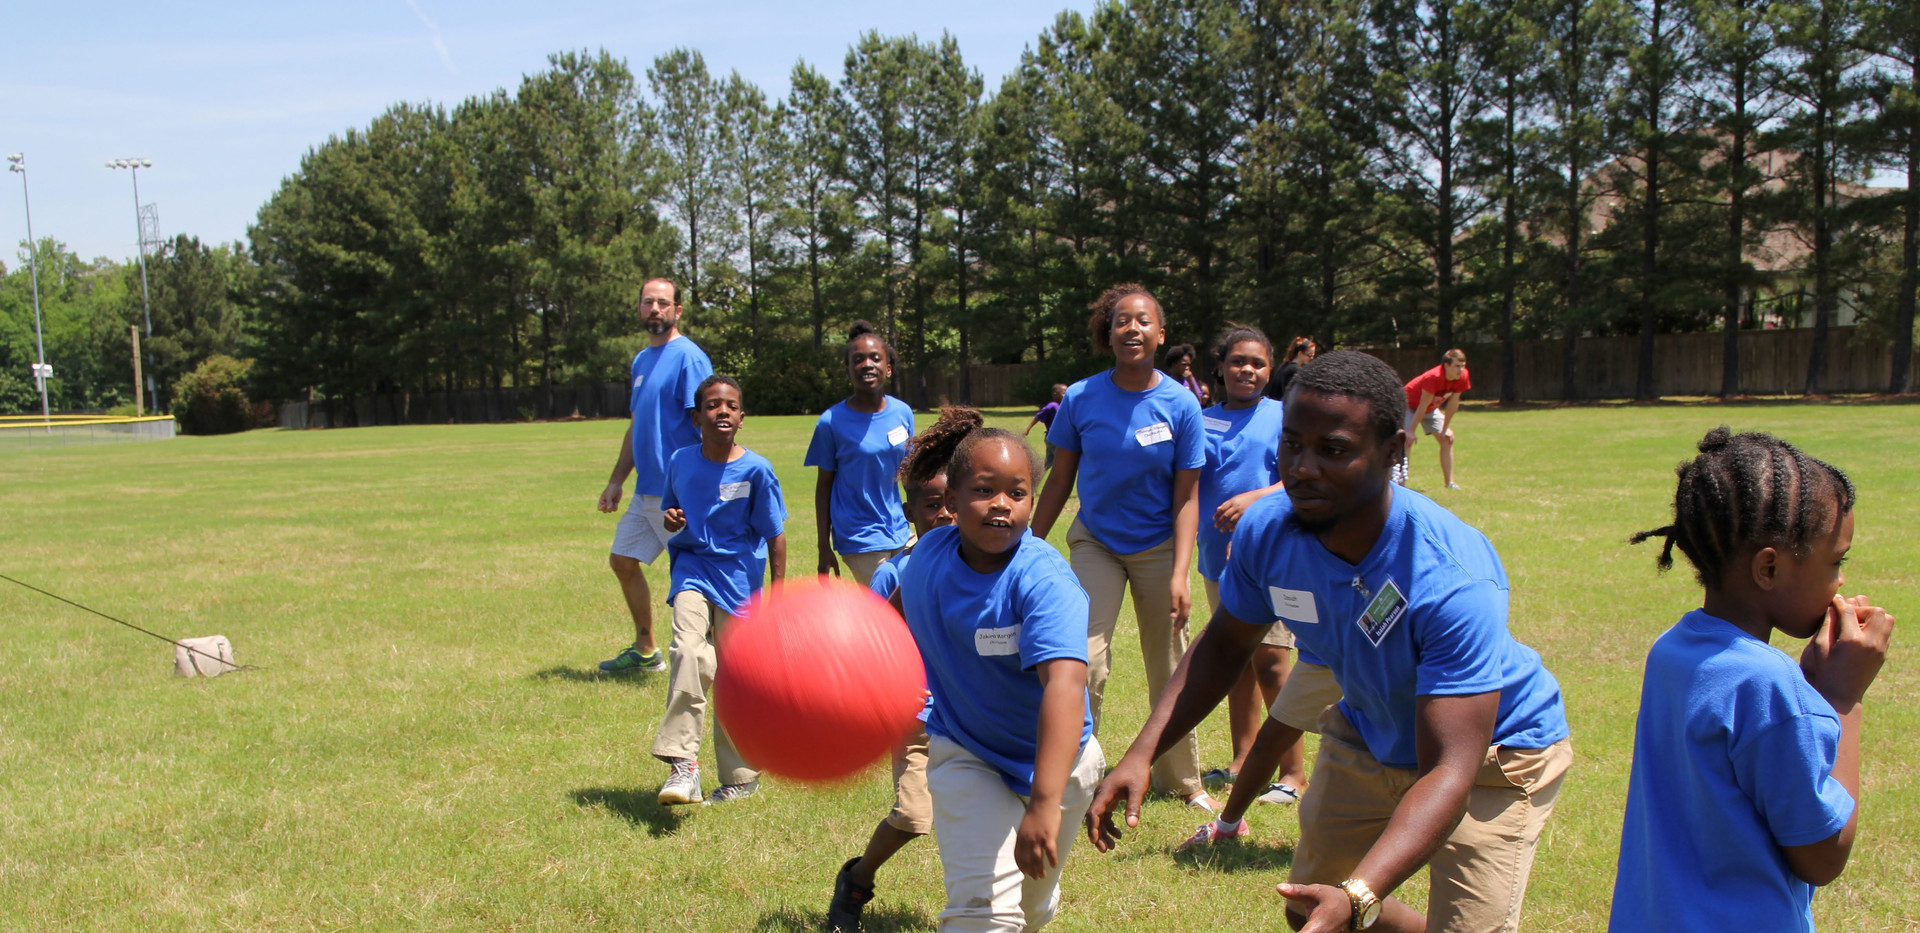 Our Youth Team members provide structure and leadership to our Youth Programs.